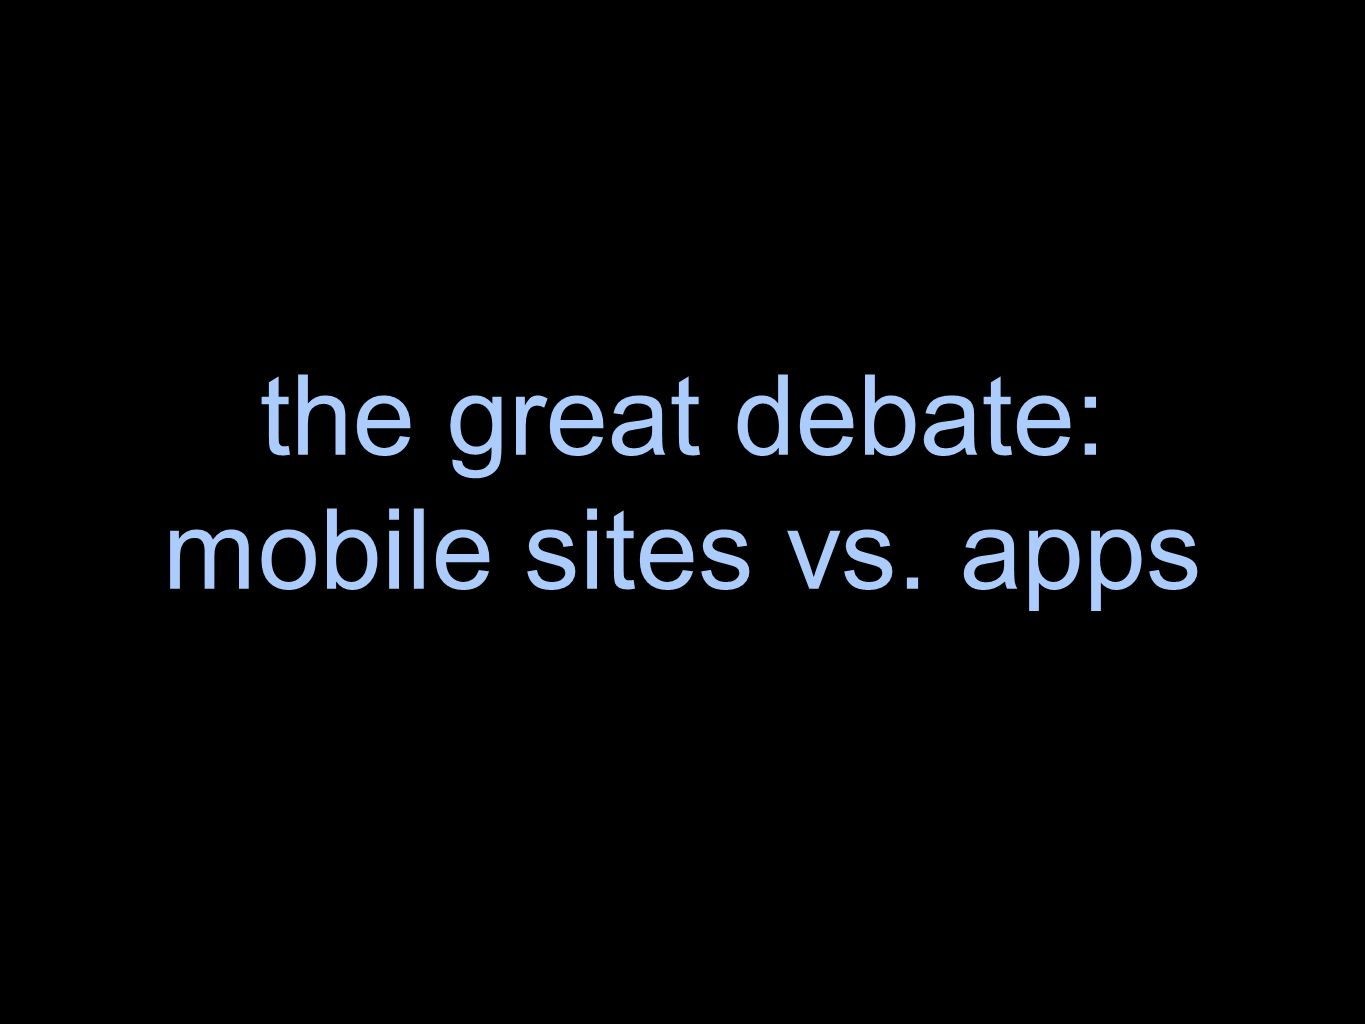 the great debate: mobile sites vs. apps